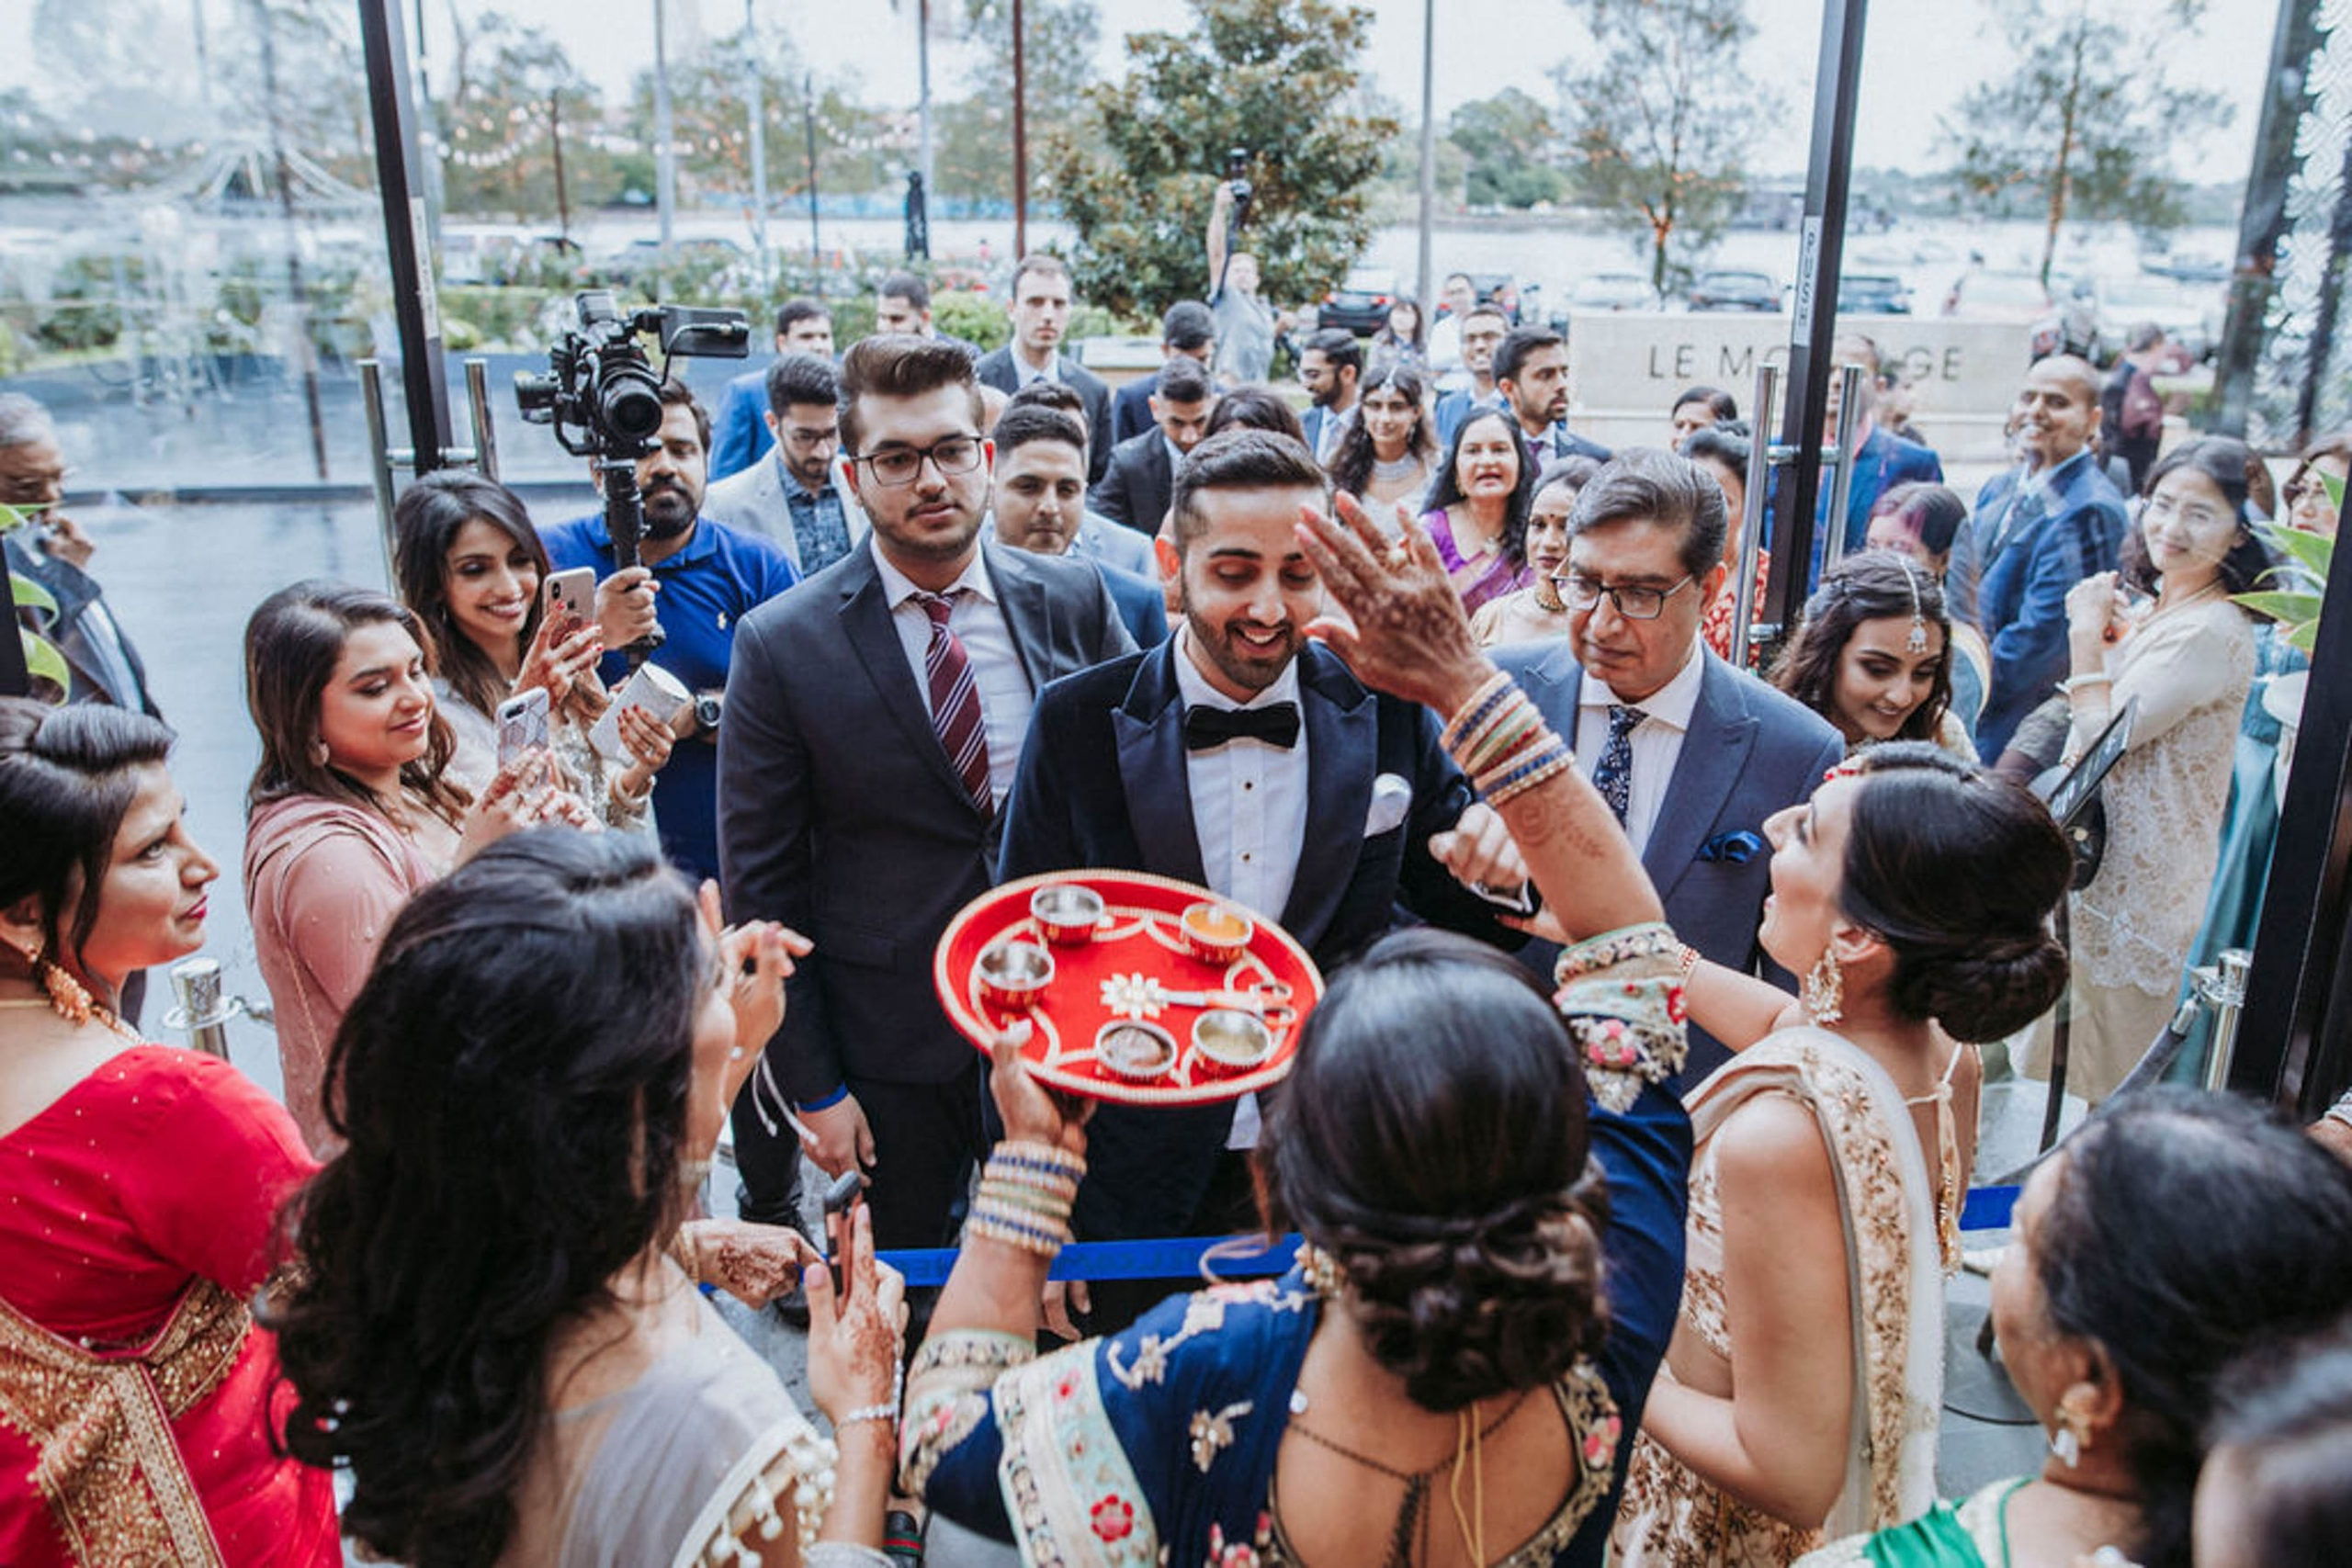 Shaheen and Qaseem's Indian Pakistani cross-cultural wedding in Sydney